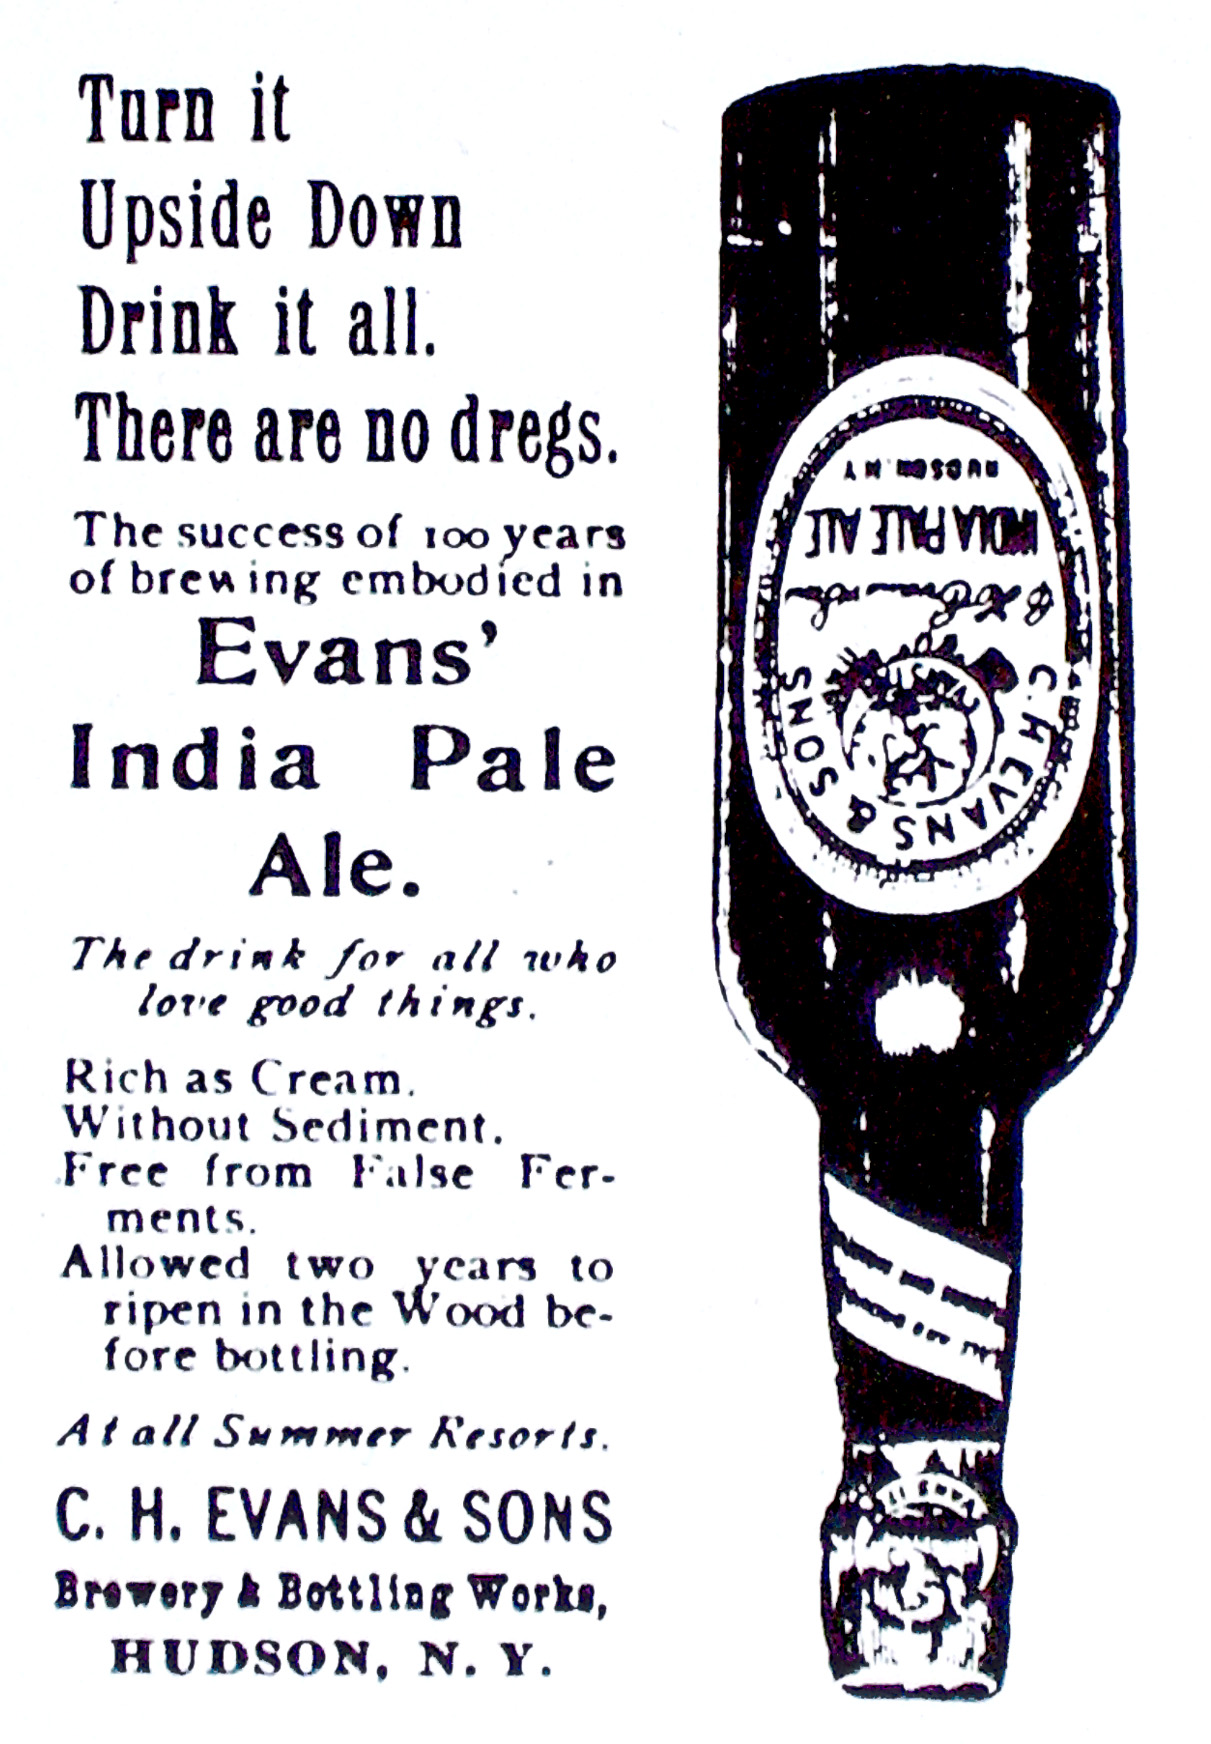 Image result for origin of indian pale ale